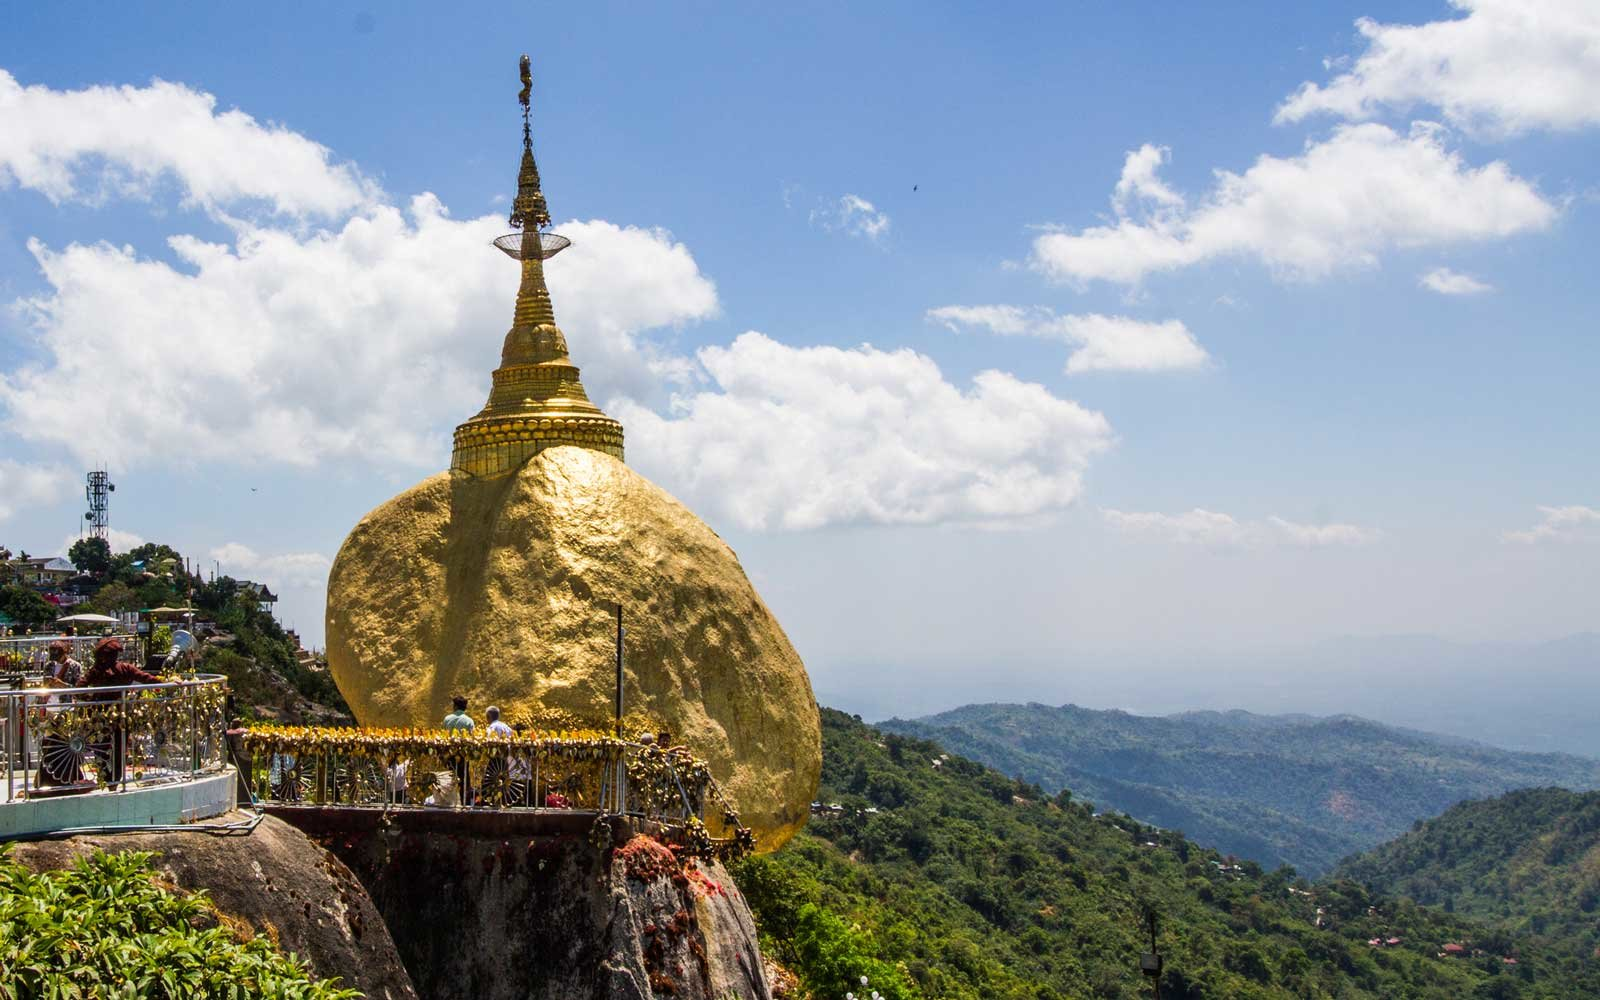 Pilgrims are praying at the Kyaiktiyo Pagoda, Golden Rock, Myanmar